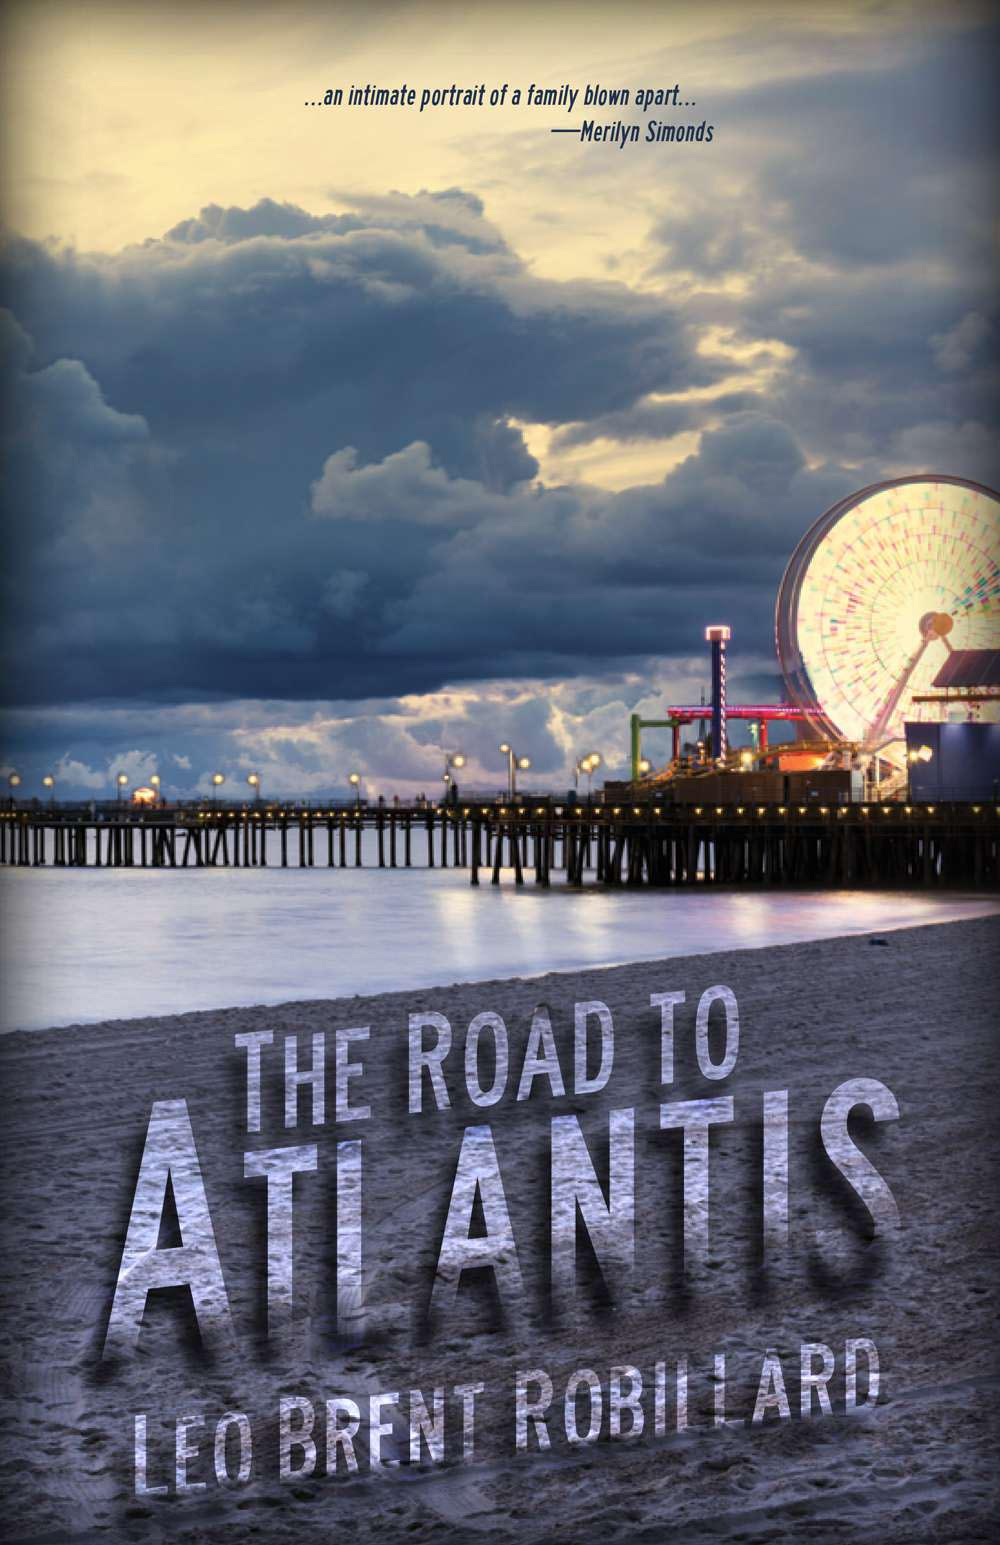 The Road to Atlantis by Leo Brent Robillard